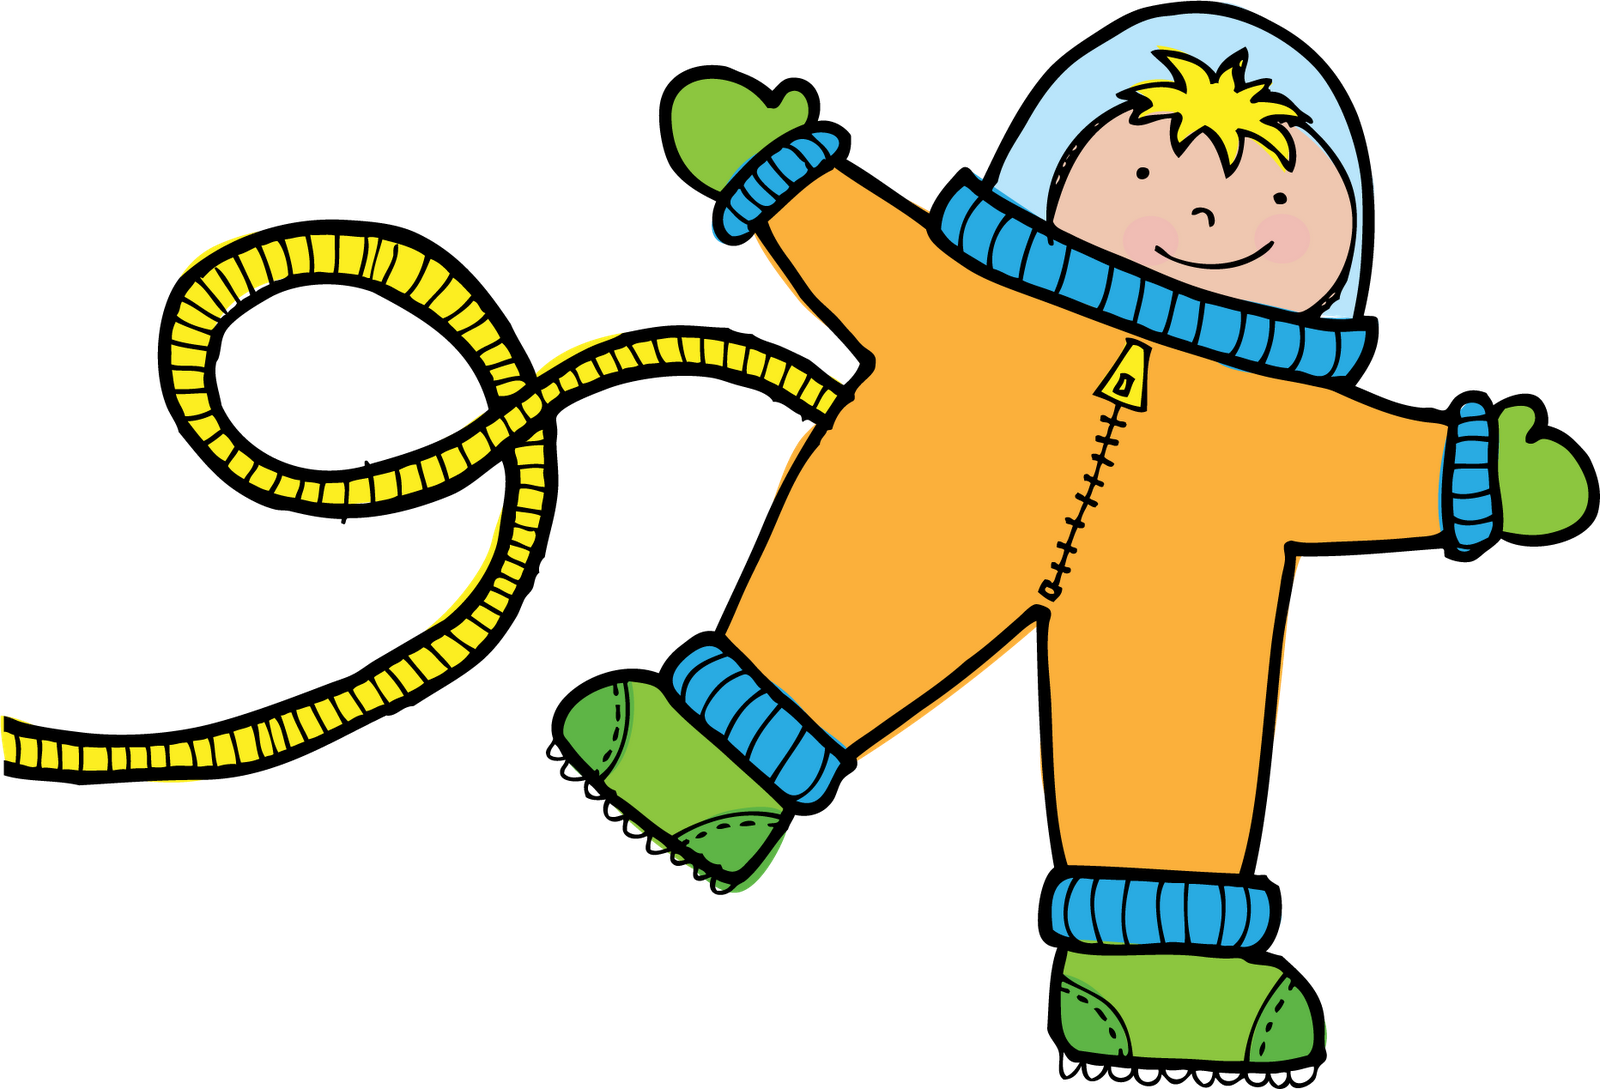 Fly clipart kid. Space graphics illustrations free